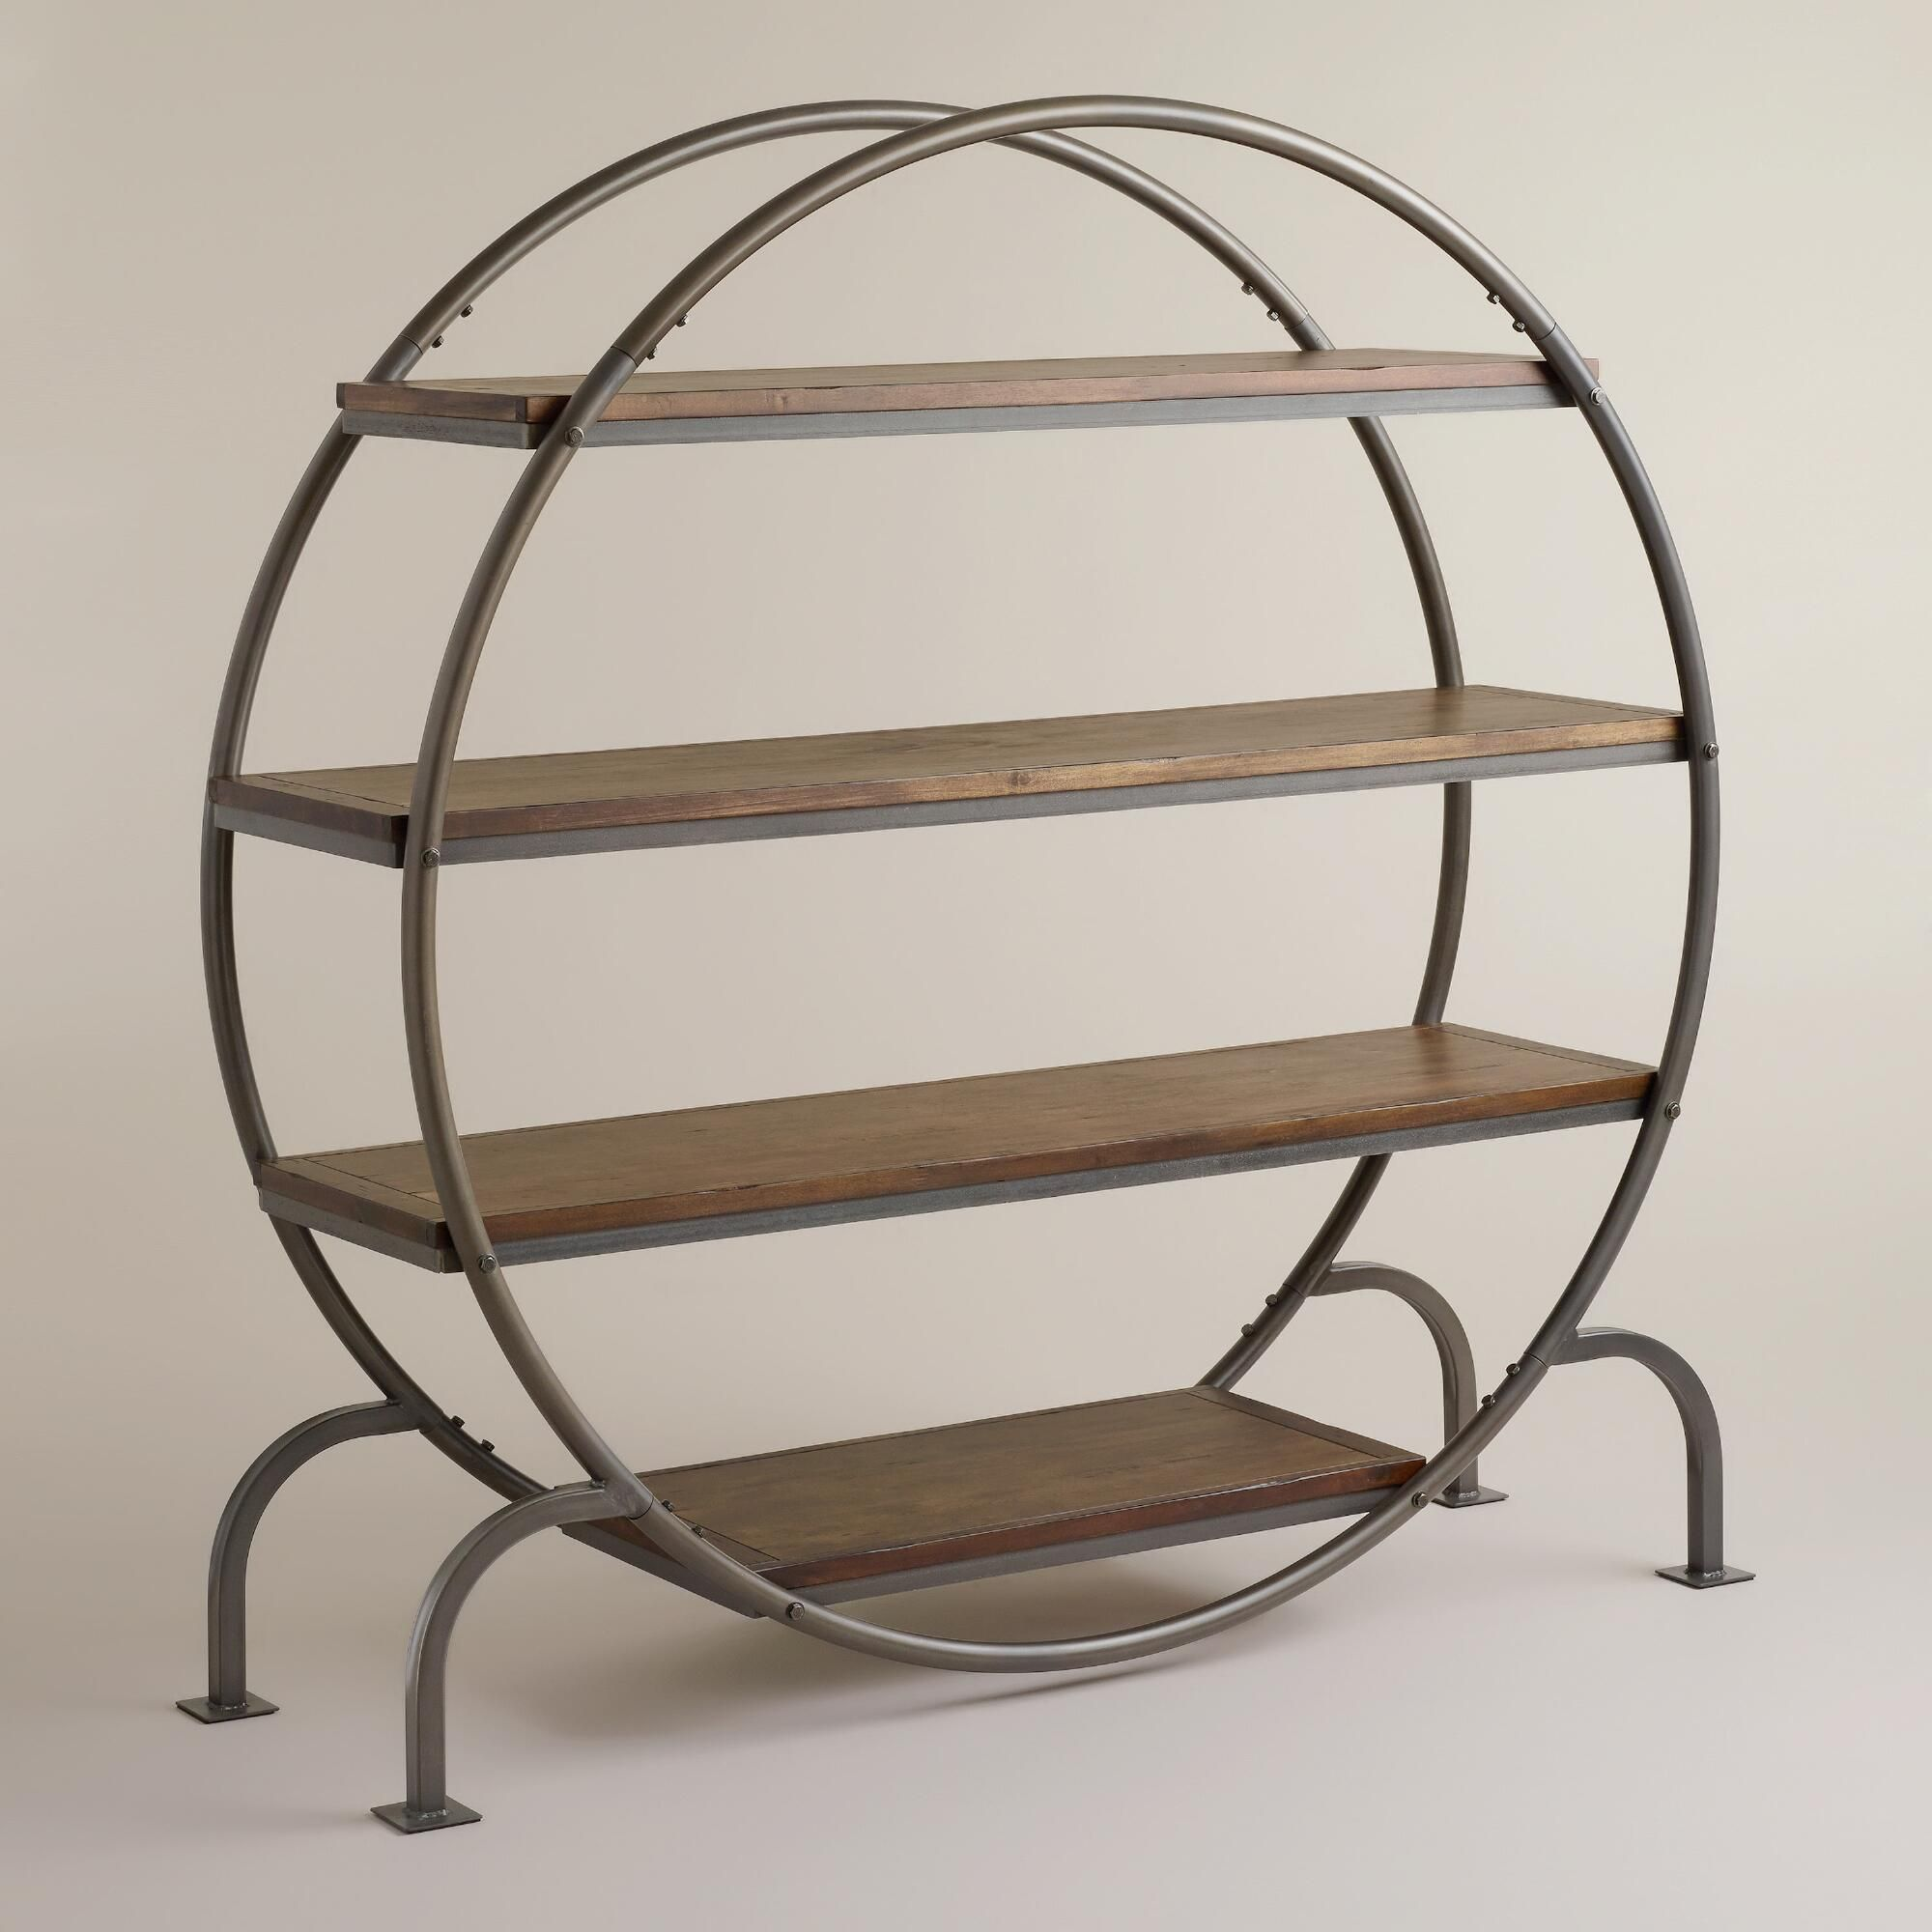 Our Ultra Stylish Round Bookcase Is B With Sophistication Thanks To Its Metal Frame